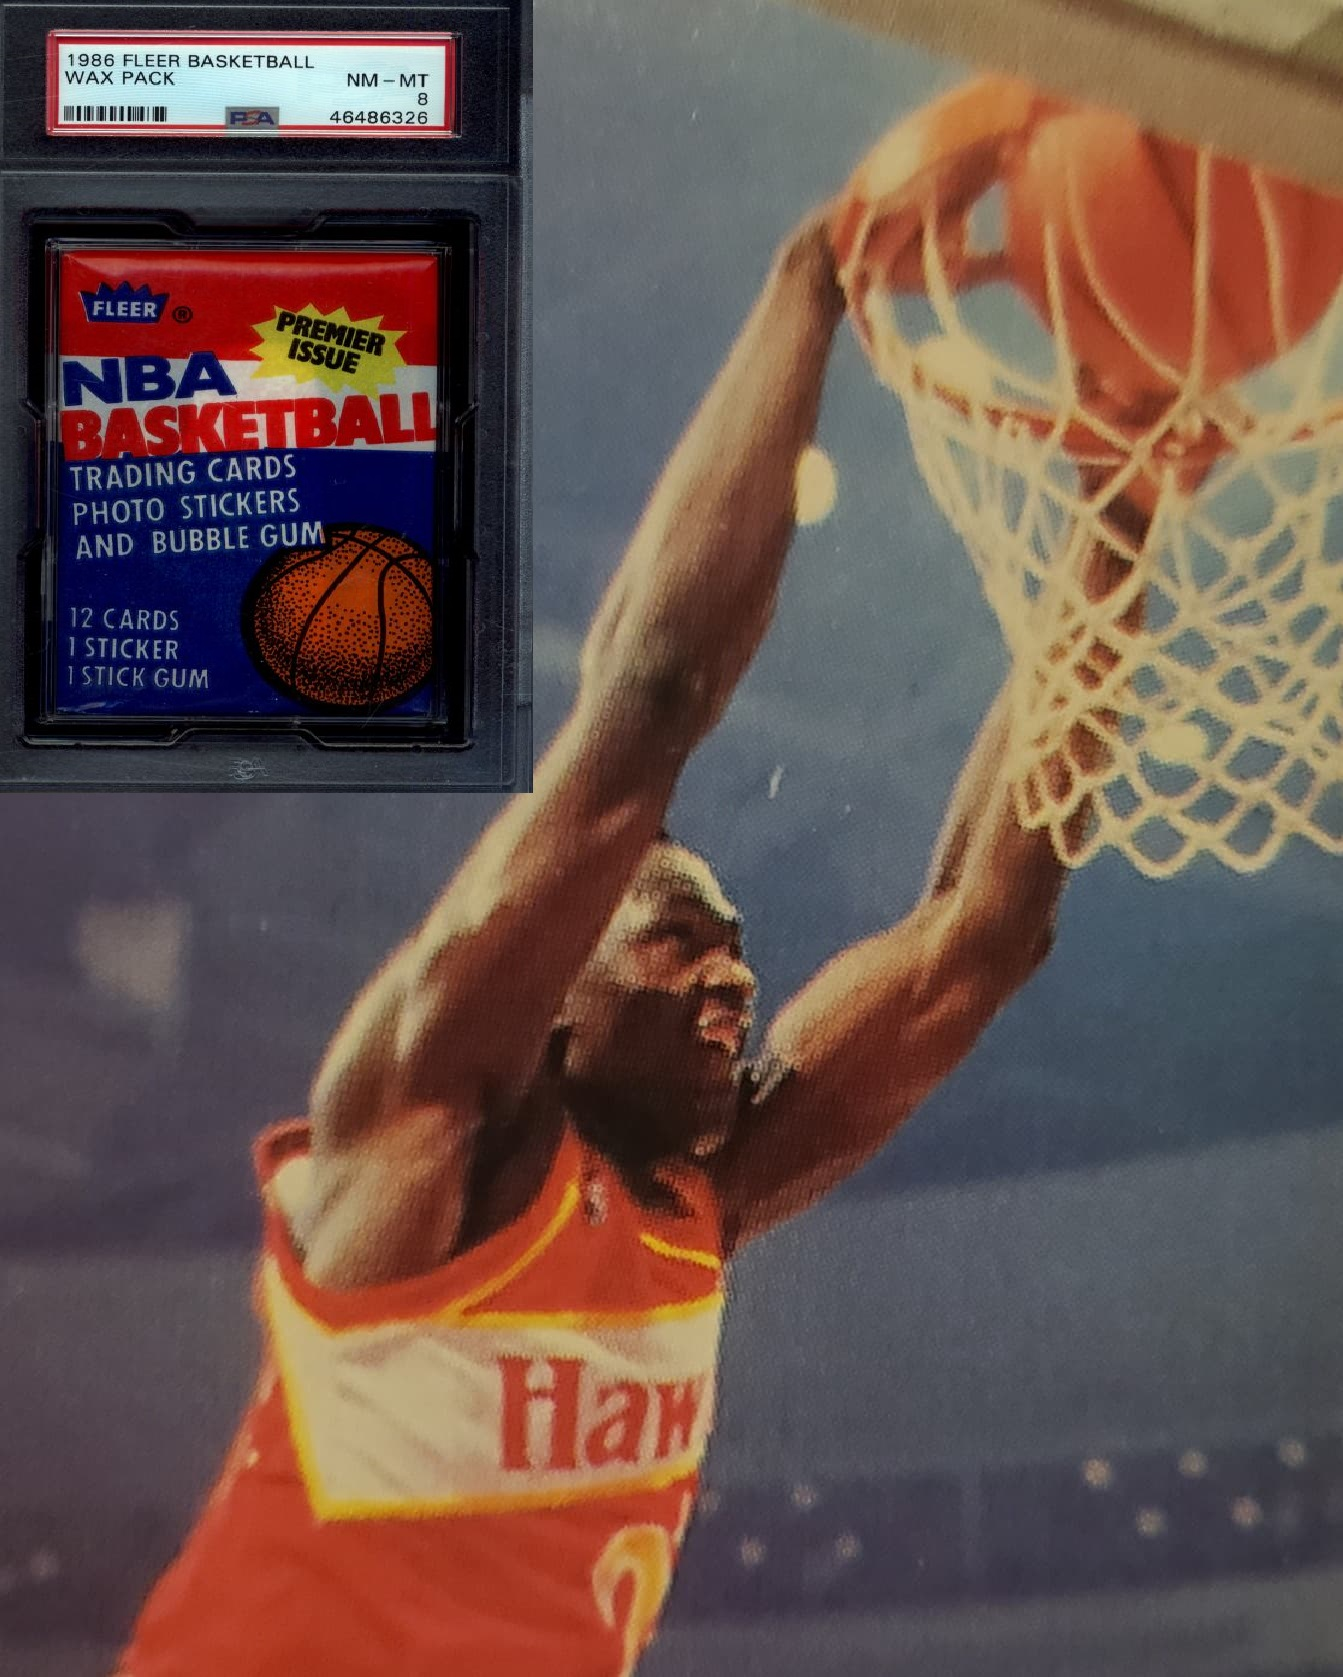 Dominique WilkinsLive Experience Breaking 1986 Fleer Wax Pack and Signed Memorabilia Prizes